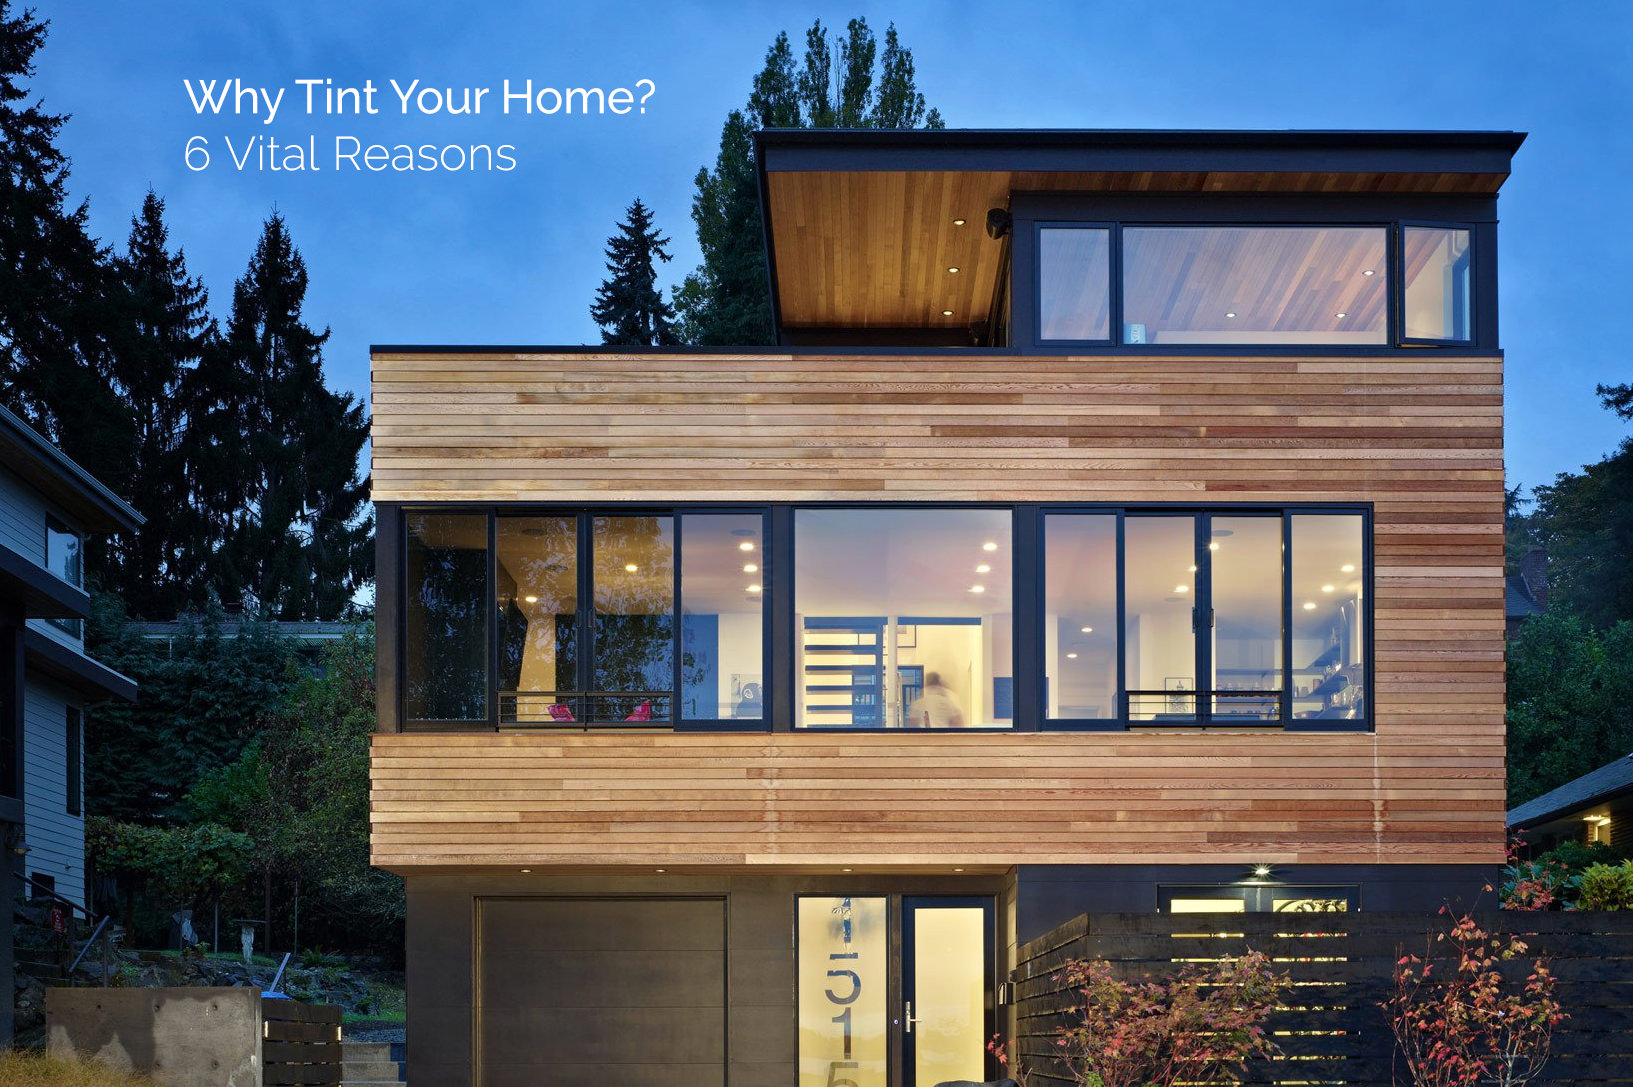 6 vital reasons to tint your home